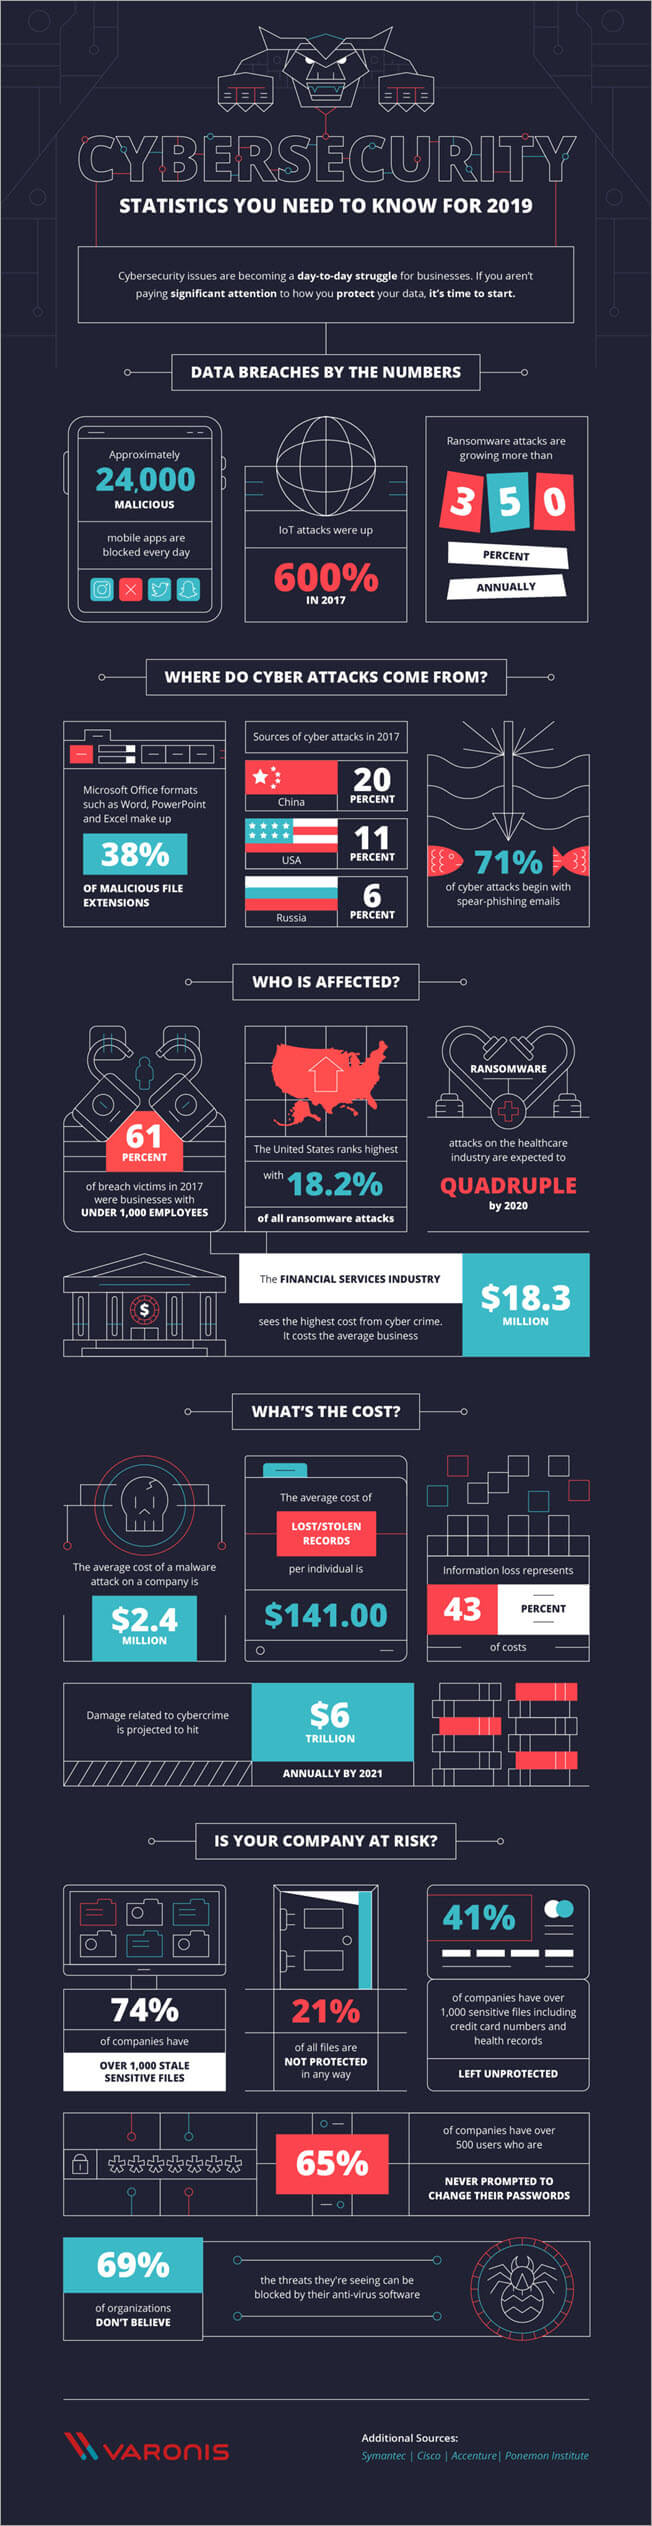 Infographic showing cyber security statistics